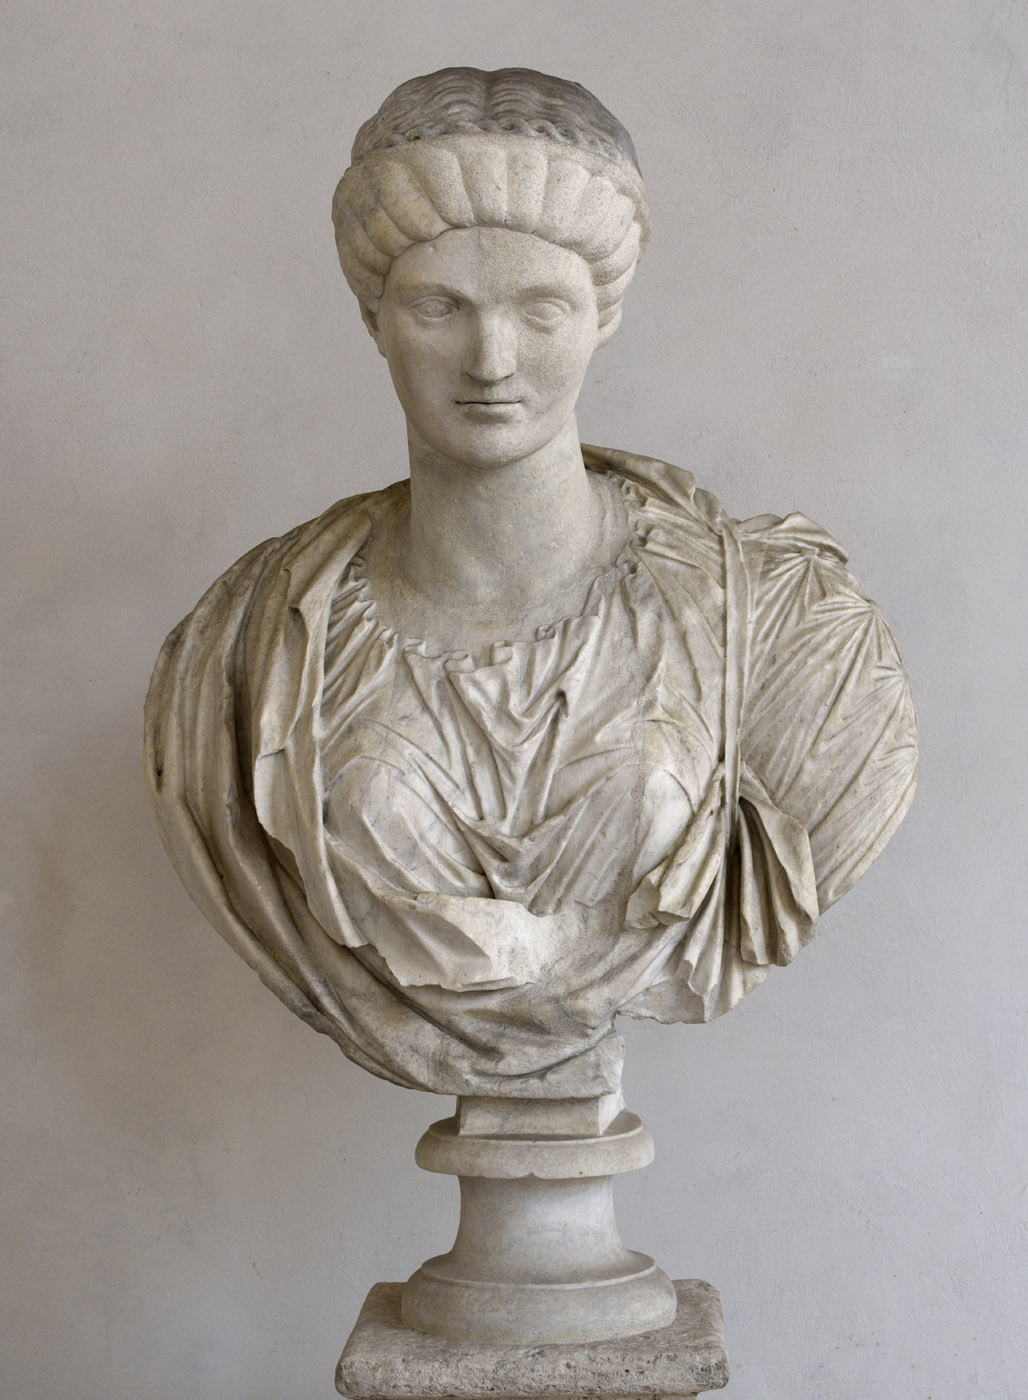 Antonia Minor. Marble. Late 1st cent. BCE — early 1st cent. CE. Rome, Roman National Museum, Baths of Diocletian, Chiostro piccolo della Certosa